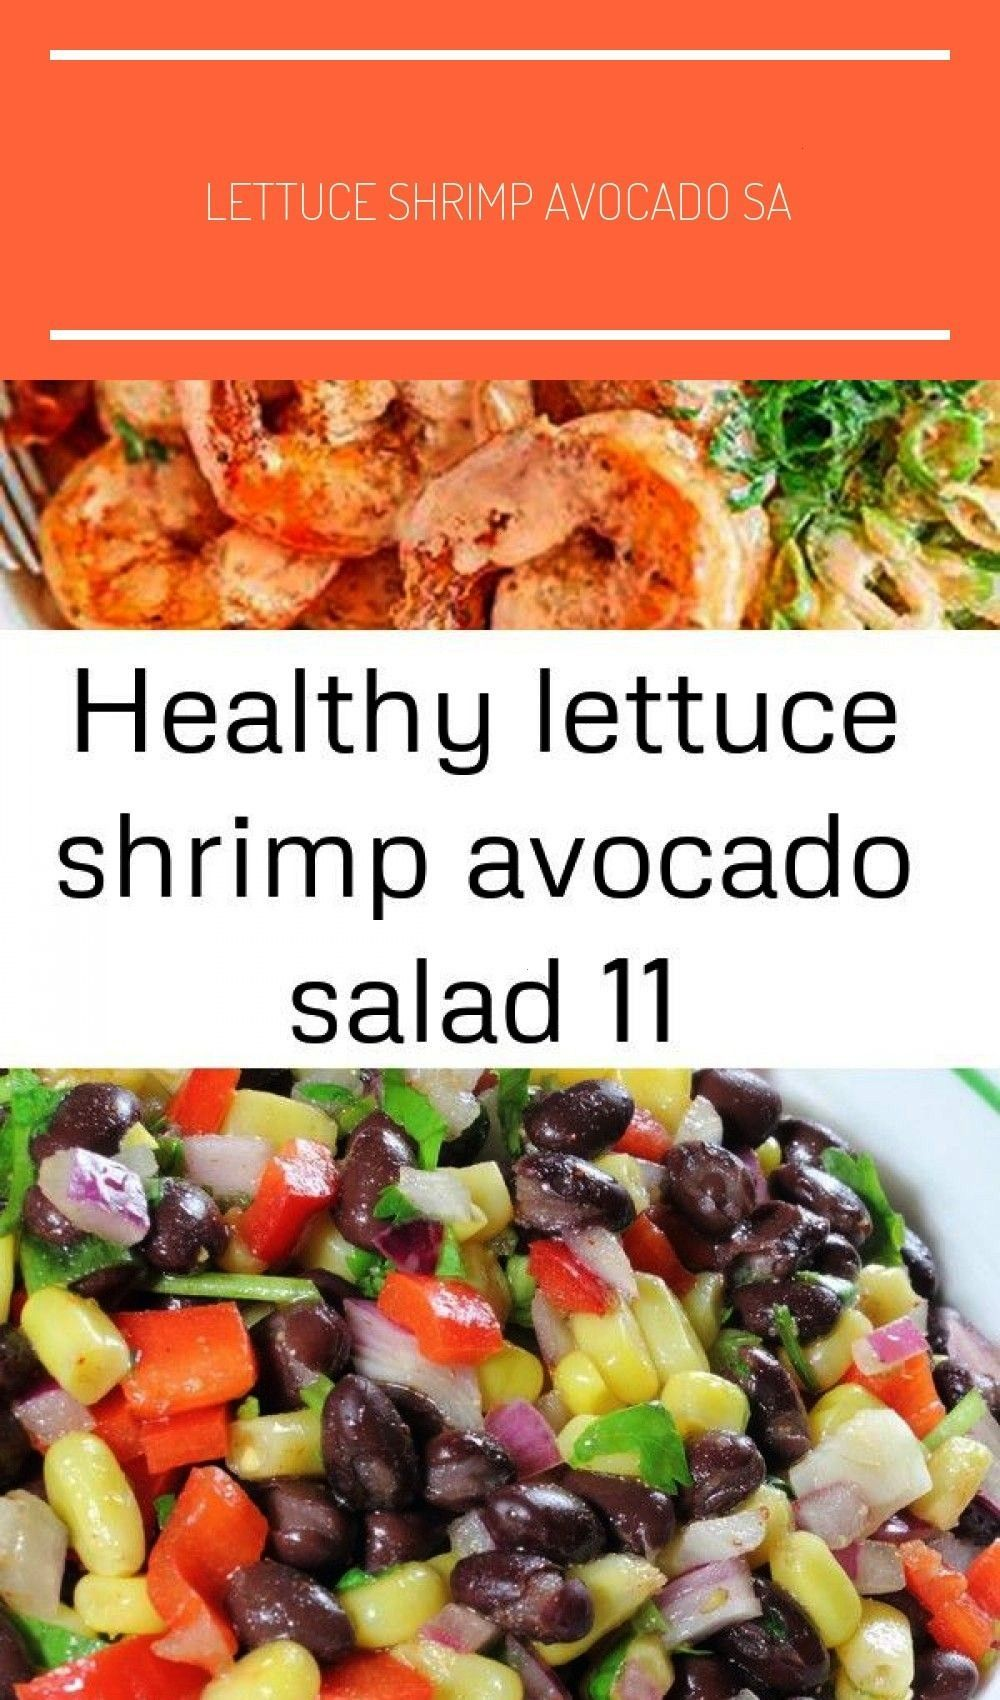 Shrimp Avocado Salad - - This chunky shrimp salad with lettuce and avocado is a healthy and light m